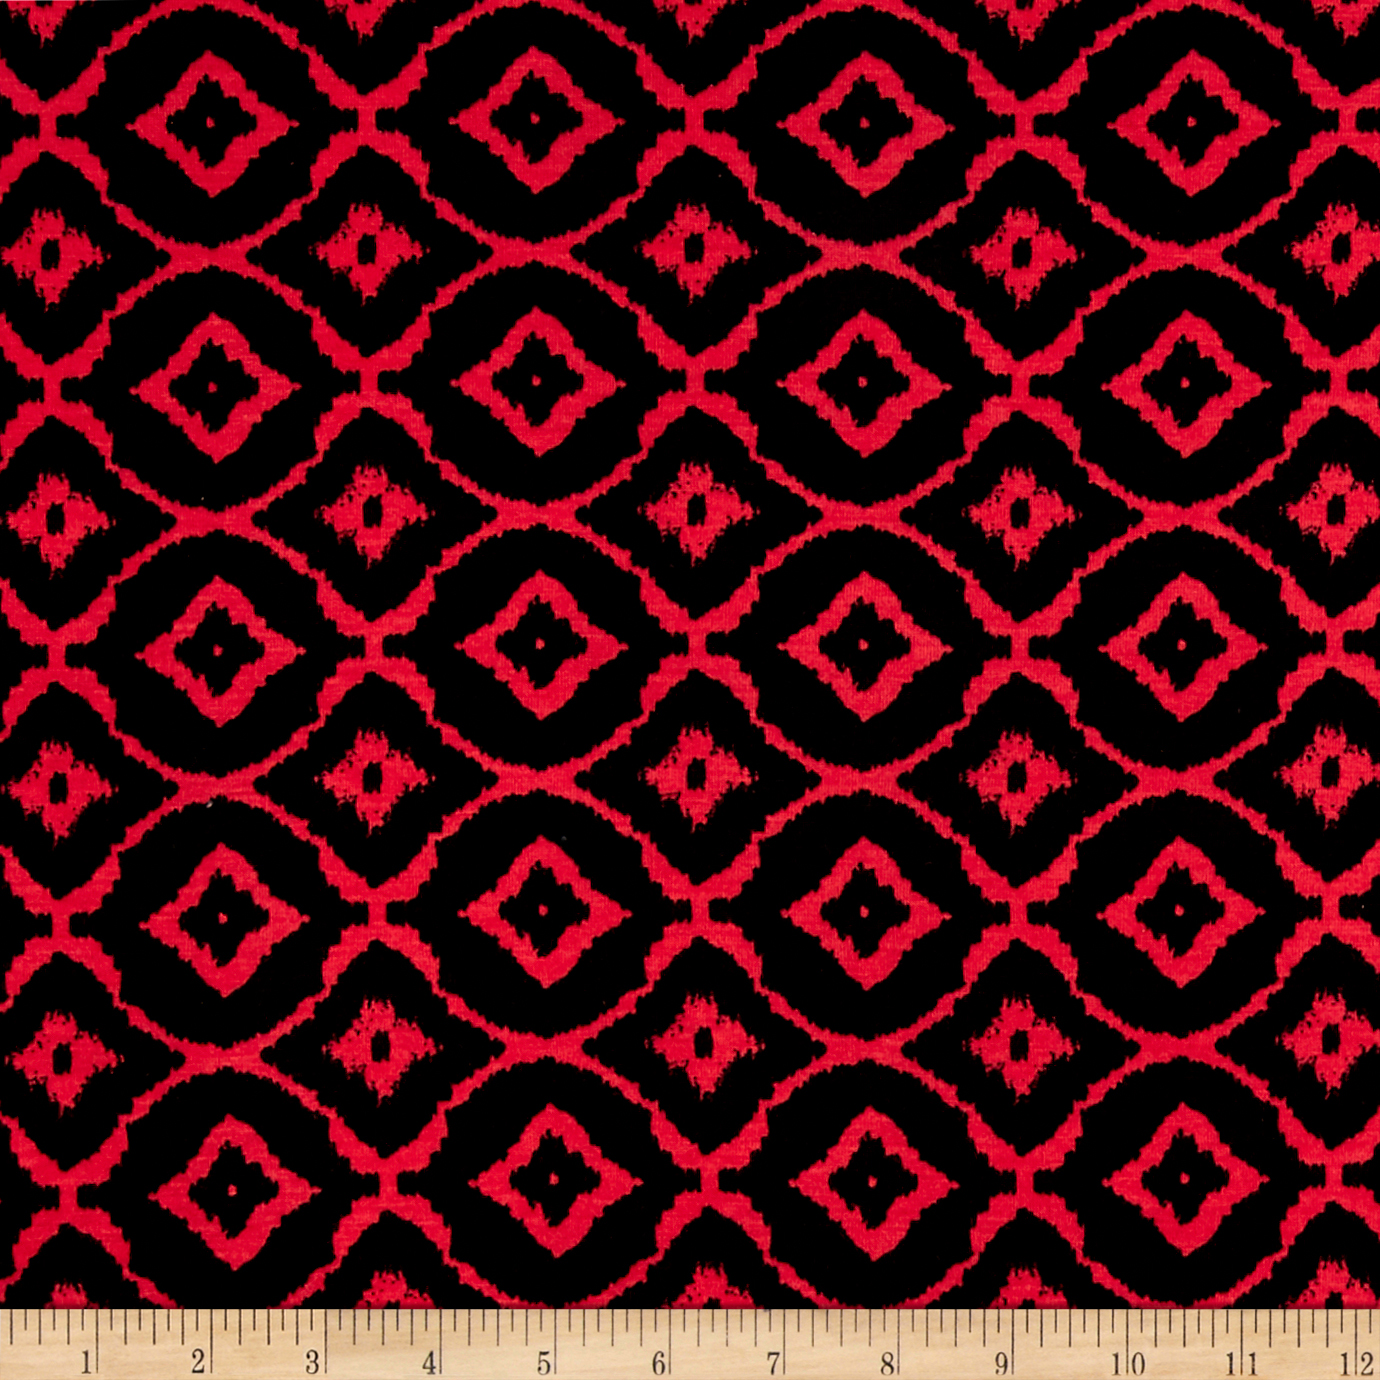 Rayon Spandex Jersey Knit Diamond Black/Red Fabric by Bellagio in USA